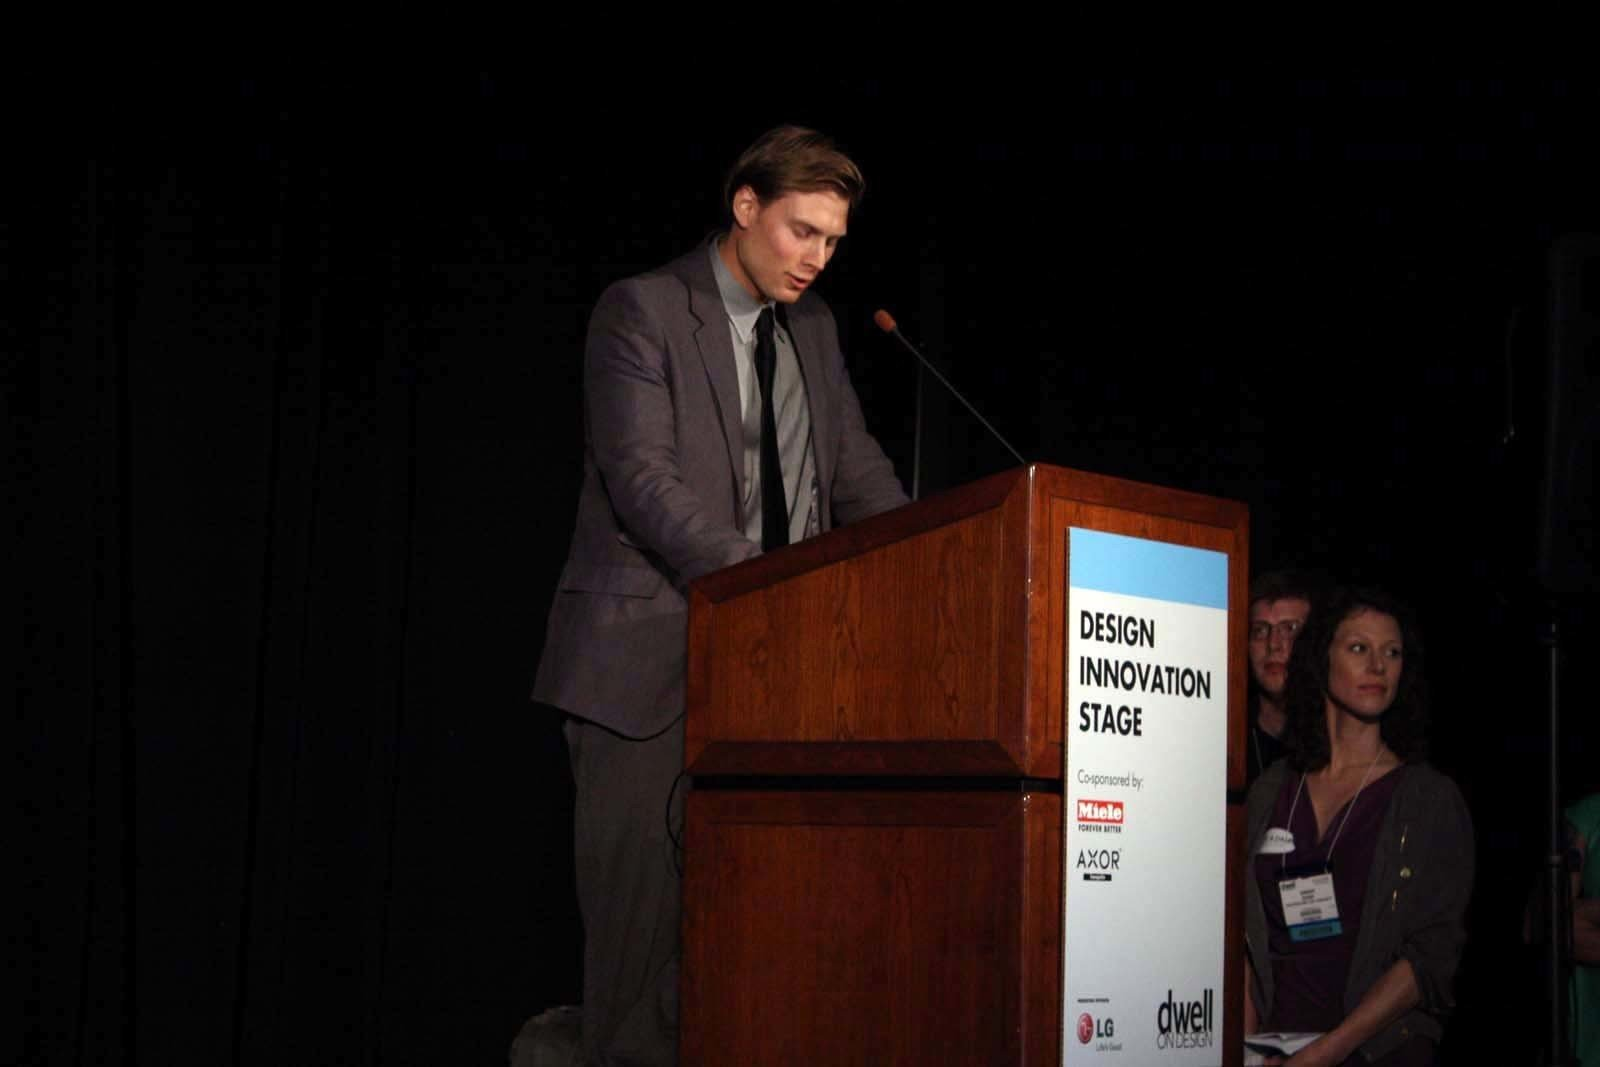 Architect Gavin Studer of the Mossy Foot Project.  Photo 2 of 7 in From the Show Floor: Pecha Kucha